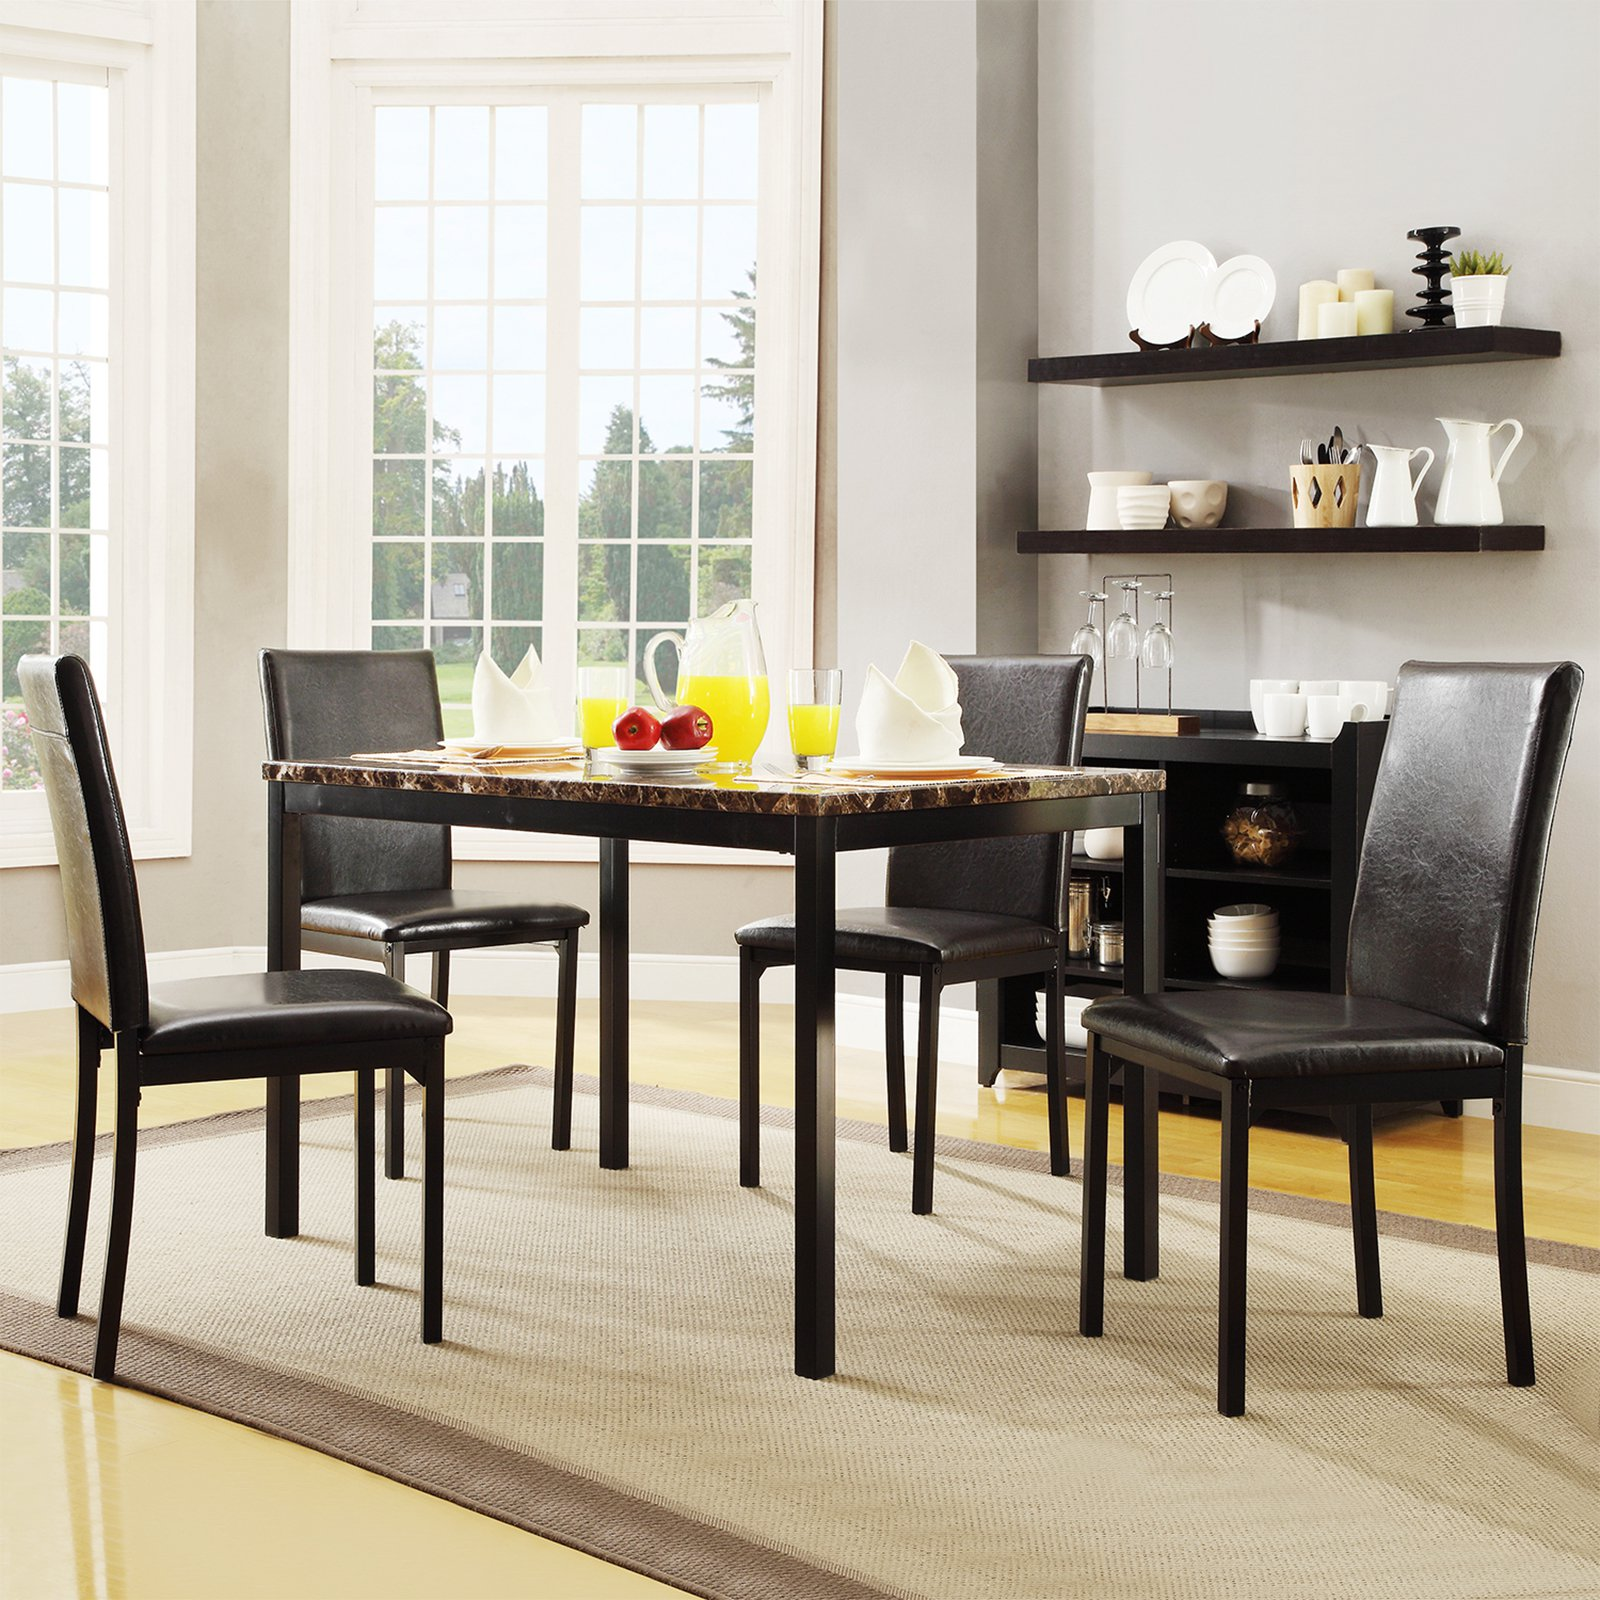 Homelegance Tempe 5 Piece Metal Table With Faux Marble Top Dining Set    Dark Brown